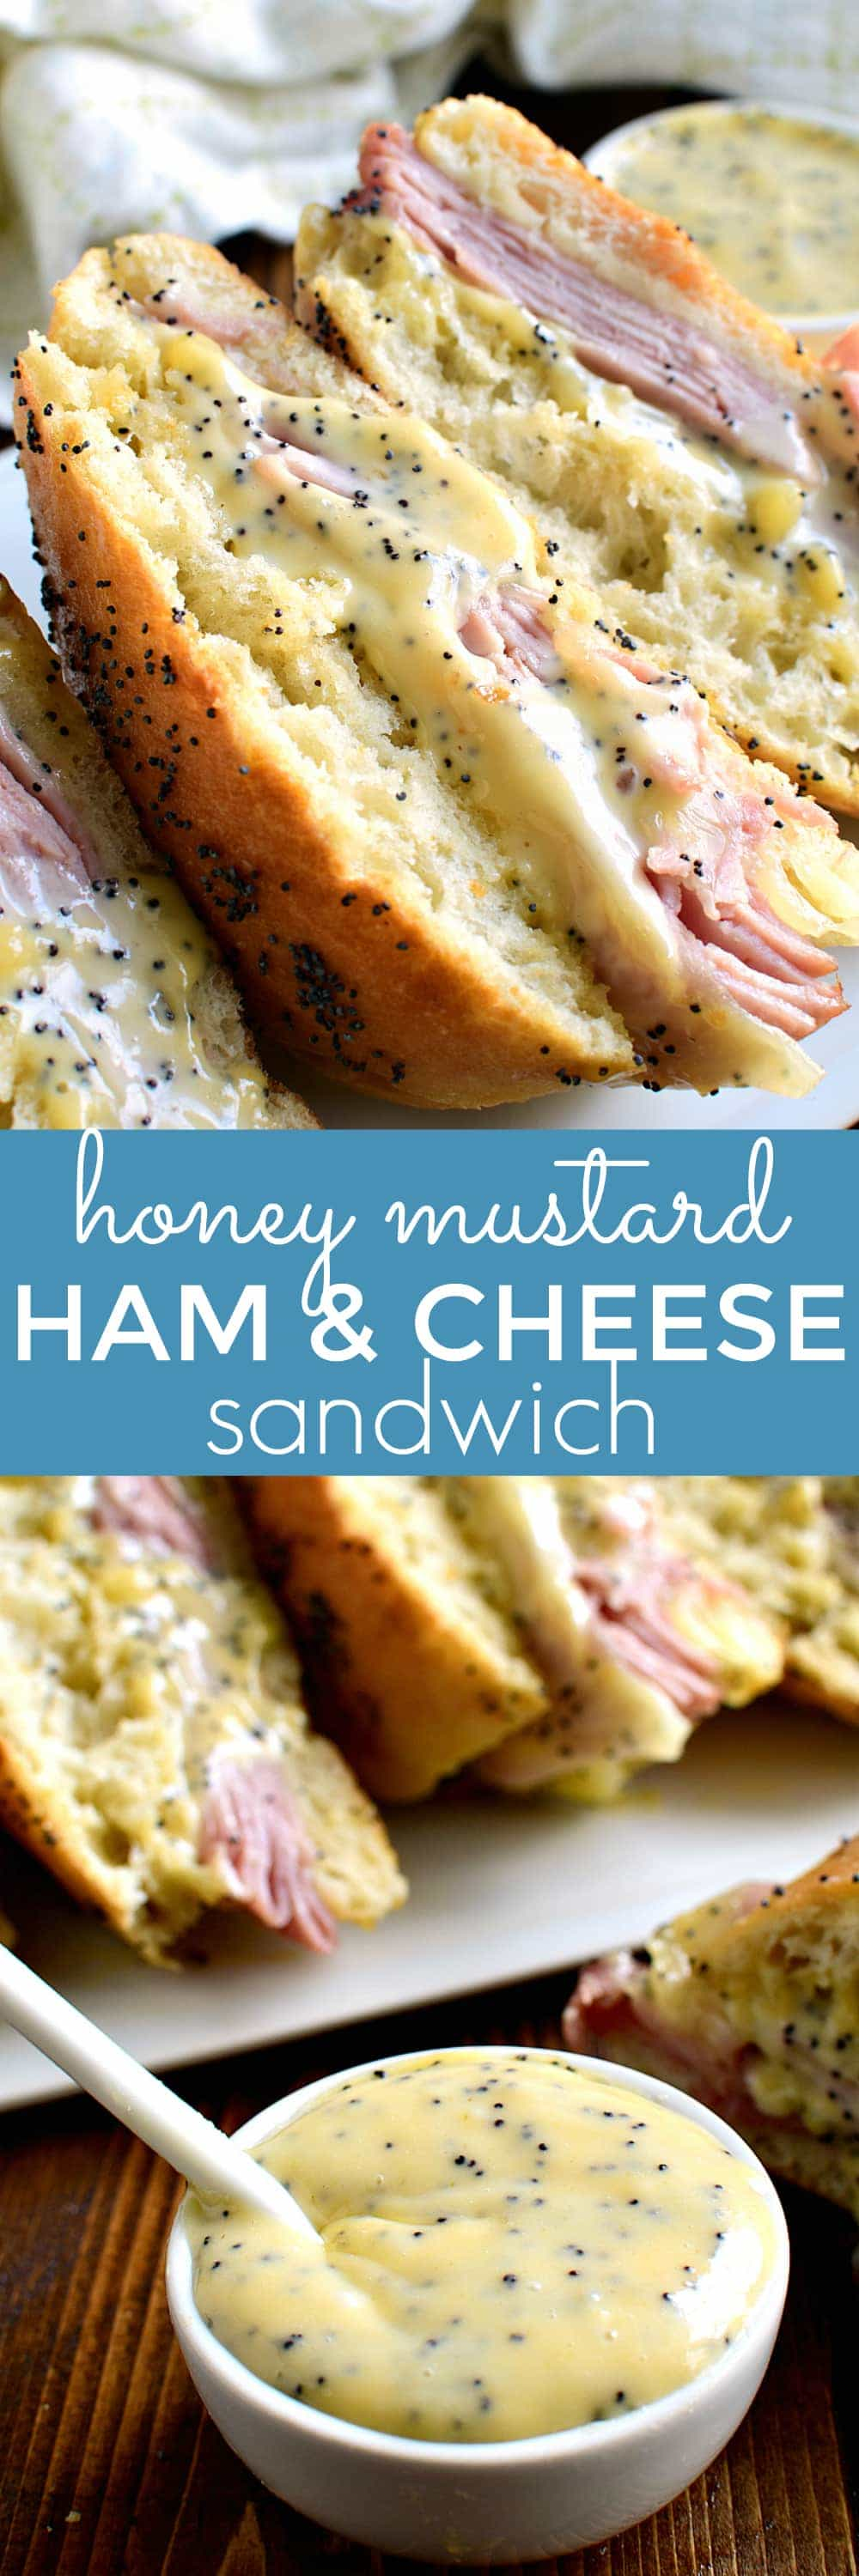 If you love honey mustard, this Honey Mustard Ham and Cheese Sandwich is for you! Perfect for lunch or dinner....a delicious twist on a classic!